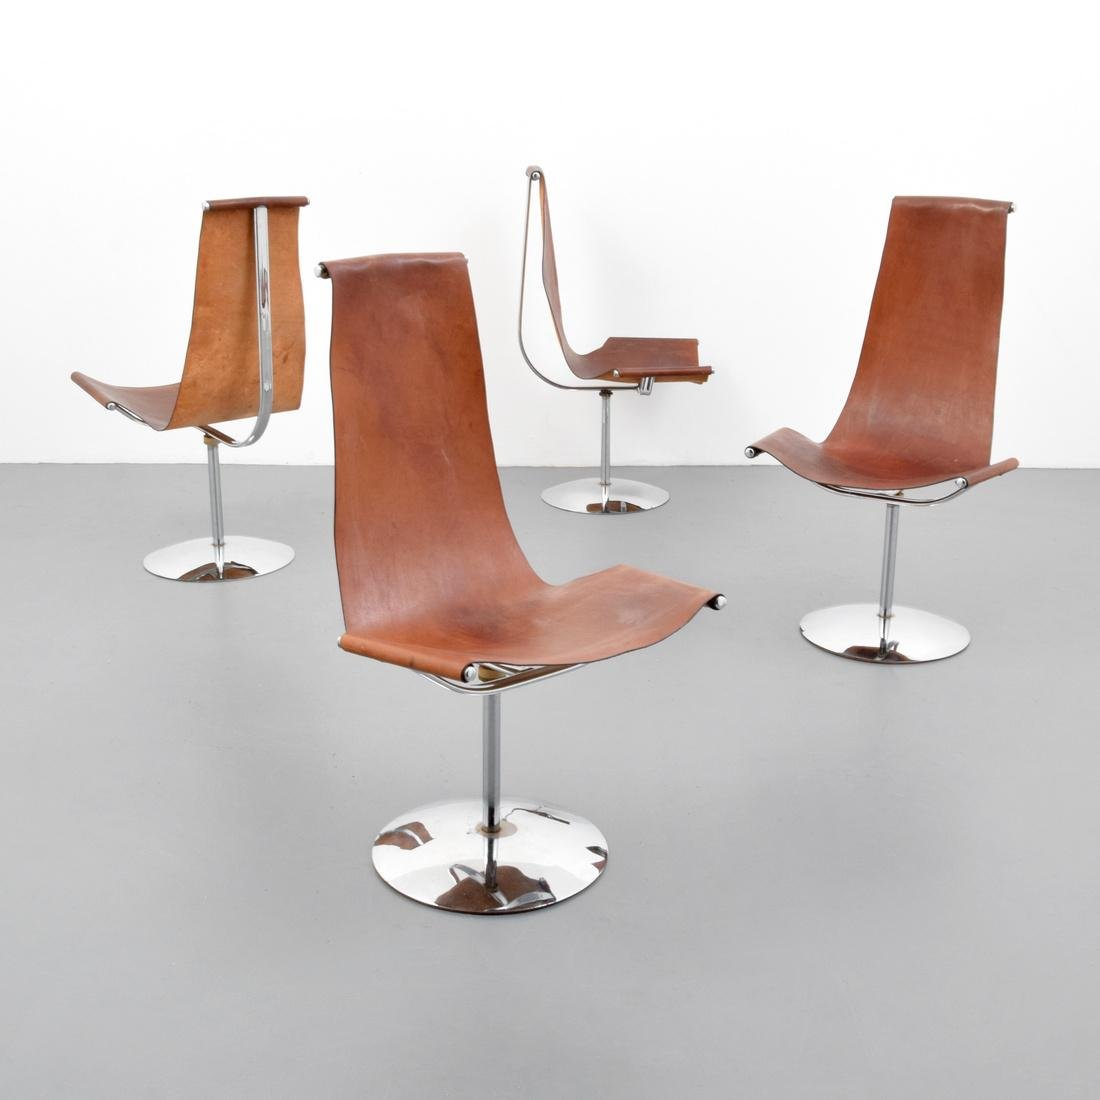 4 Leather Sling Chairs, Manner of Laverne